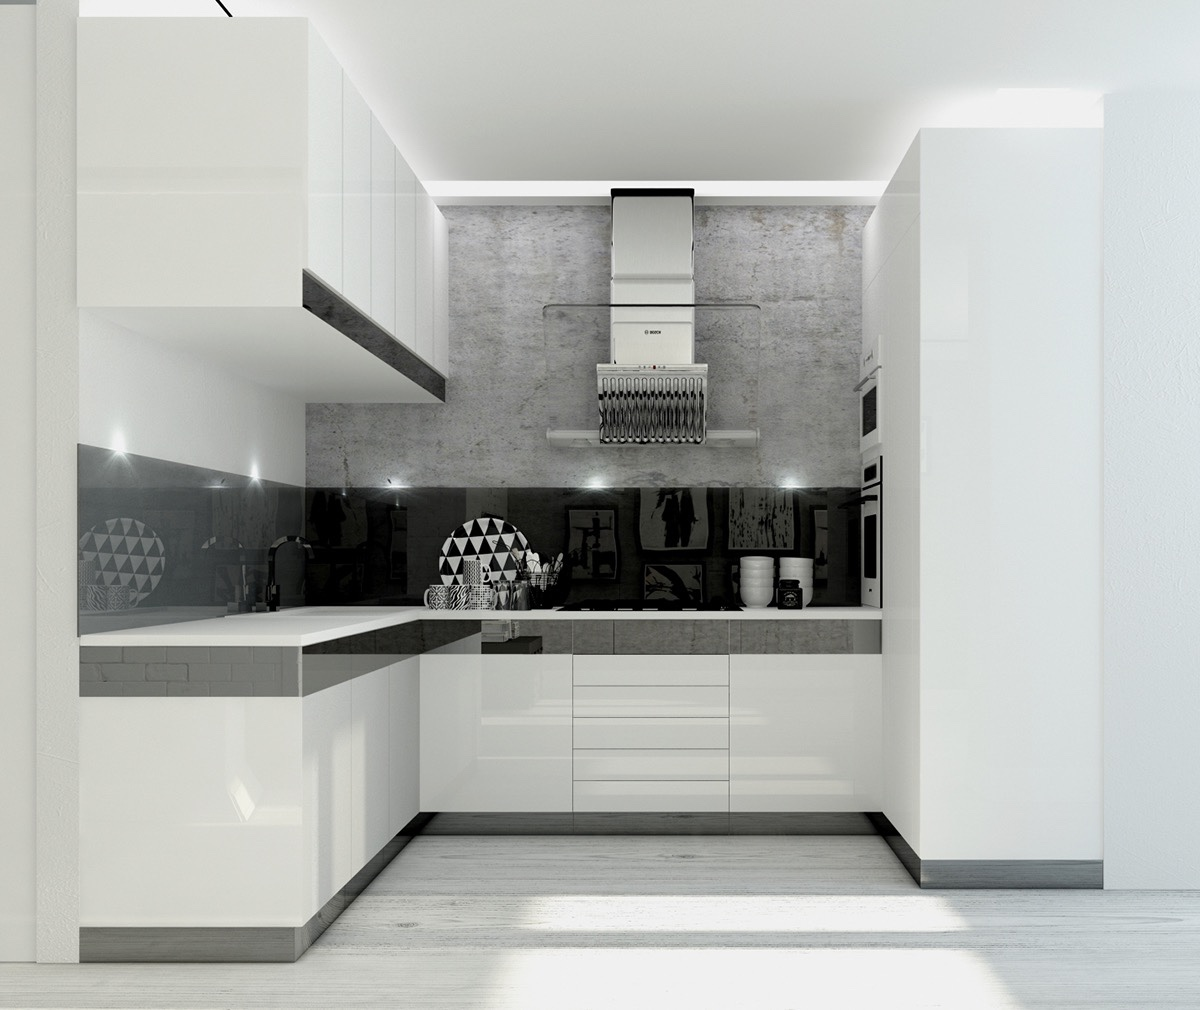 industrial-greyscale-kitchen-design